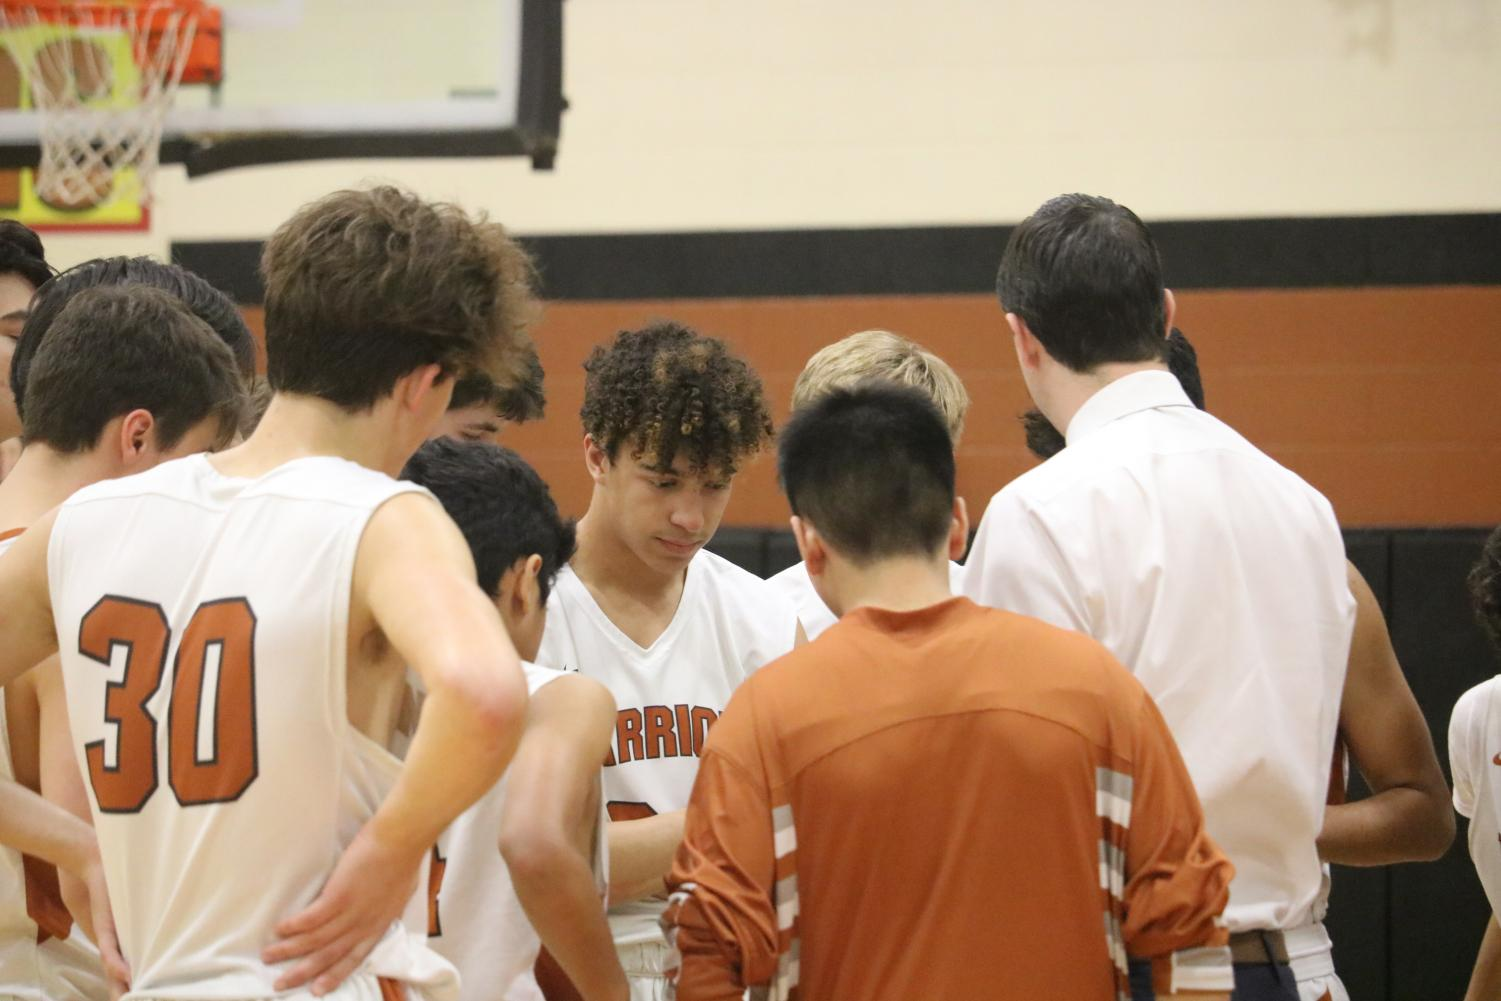 The+JV+boys+huddle+up+to+their+coach+in+the+first+quarter.+In+the+timeout%2C+the+boys+reflected+on+their+plays.